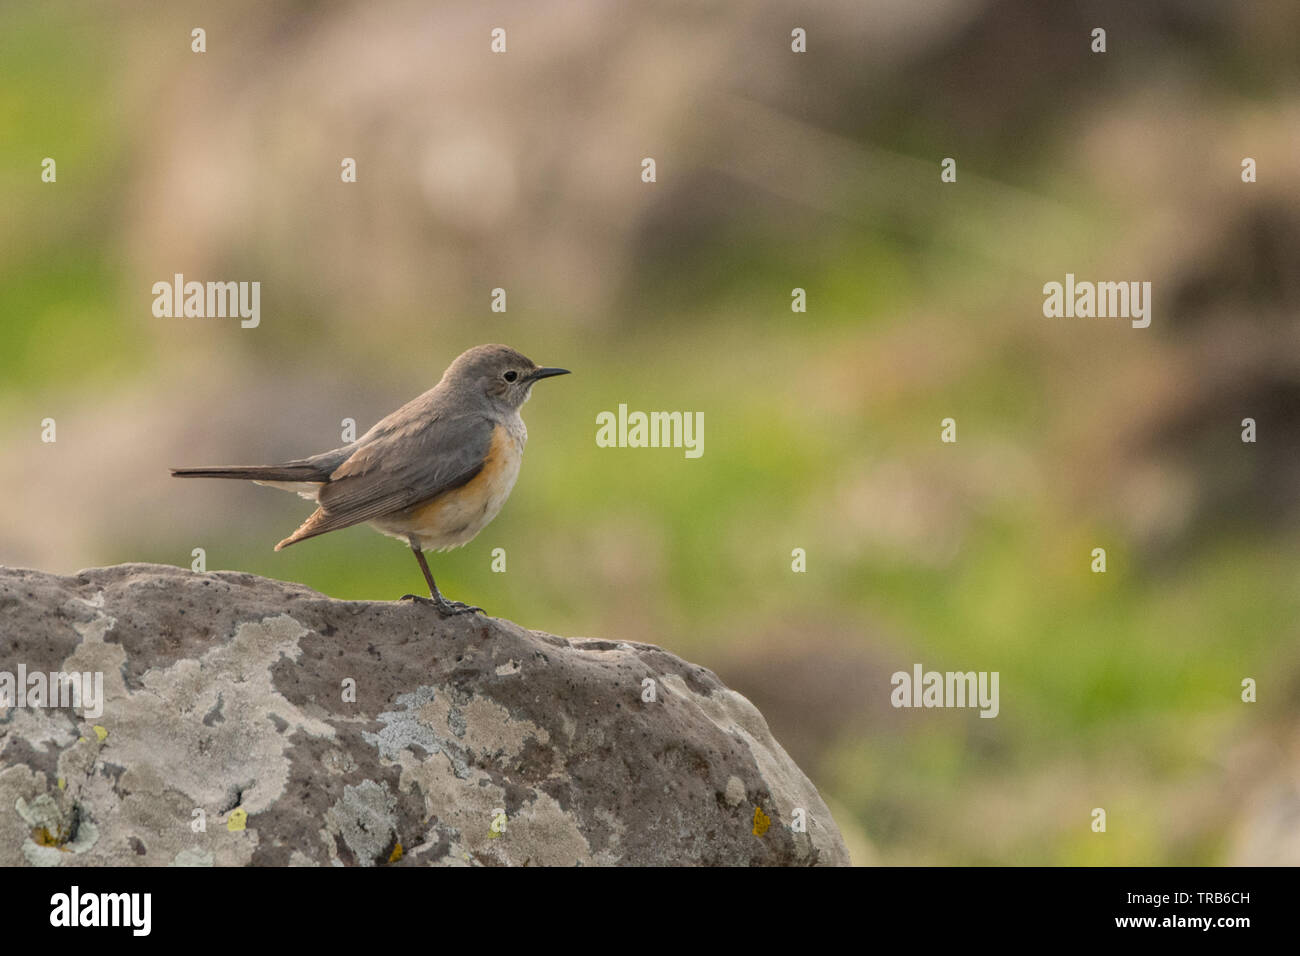 Stunning bird photo. White-throated robin (Irania gutturalis). Stock Photo